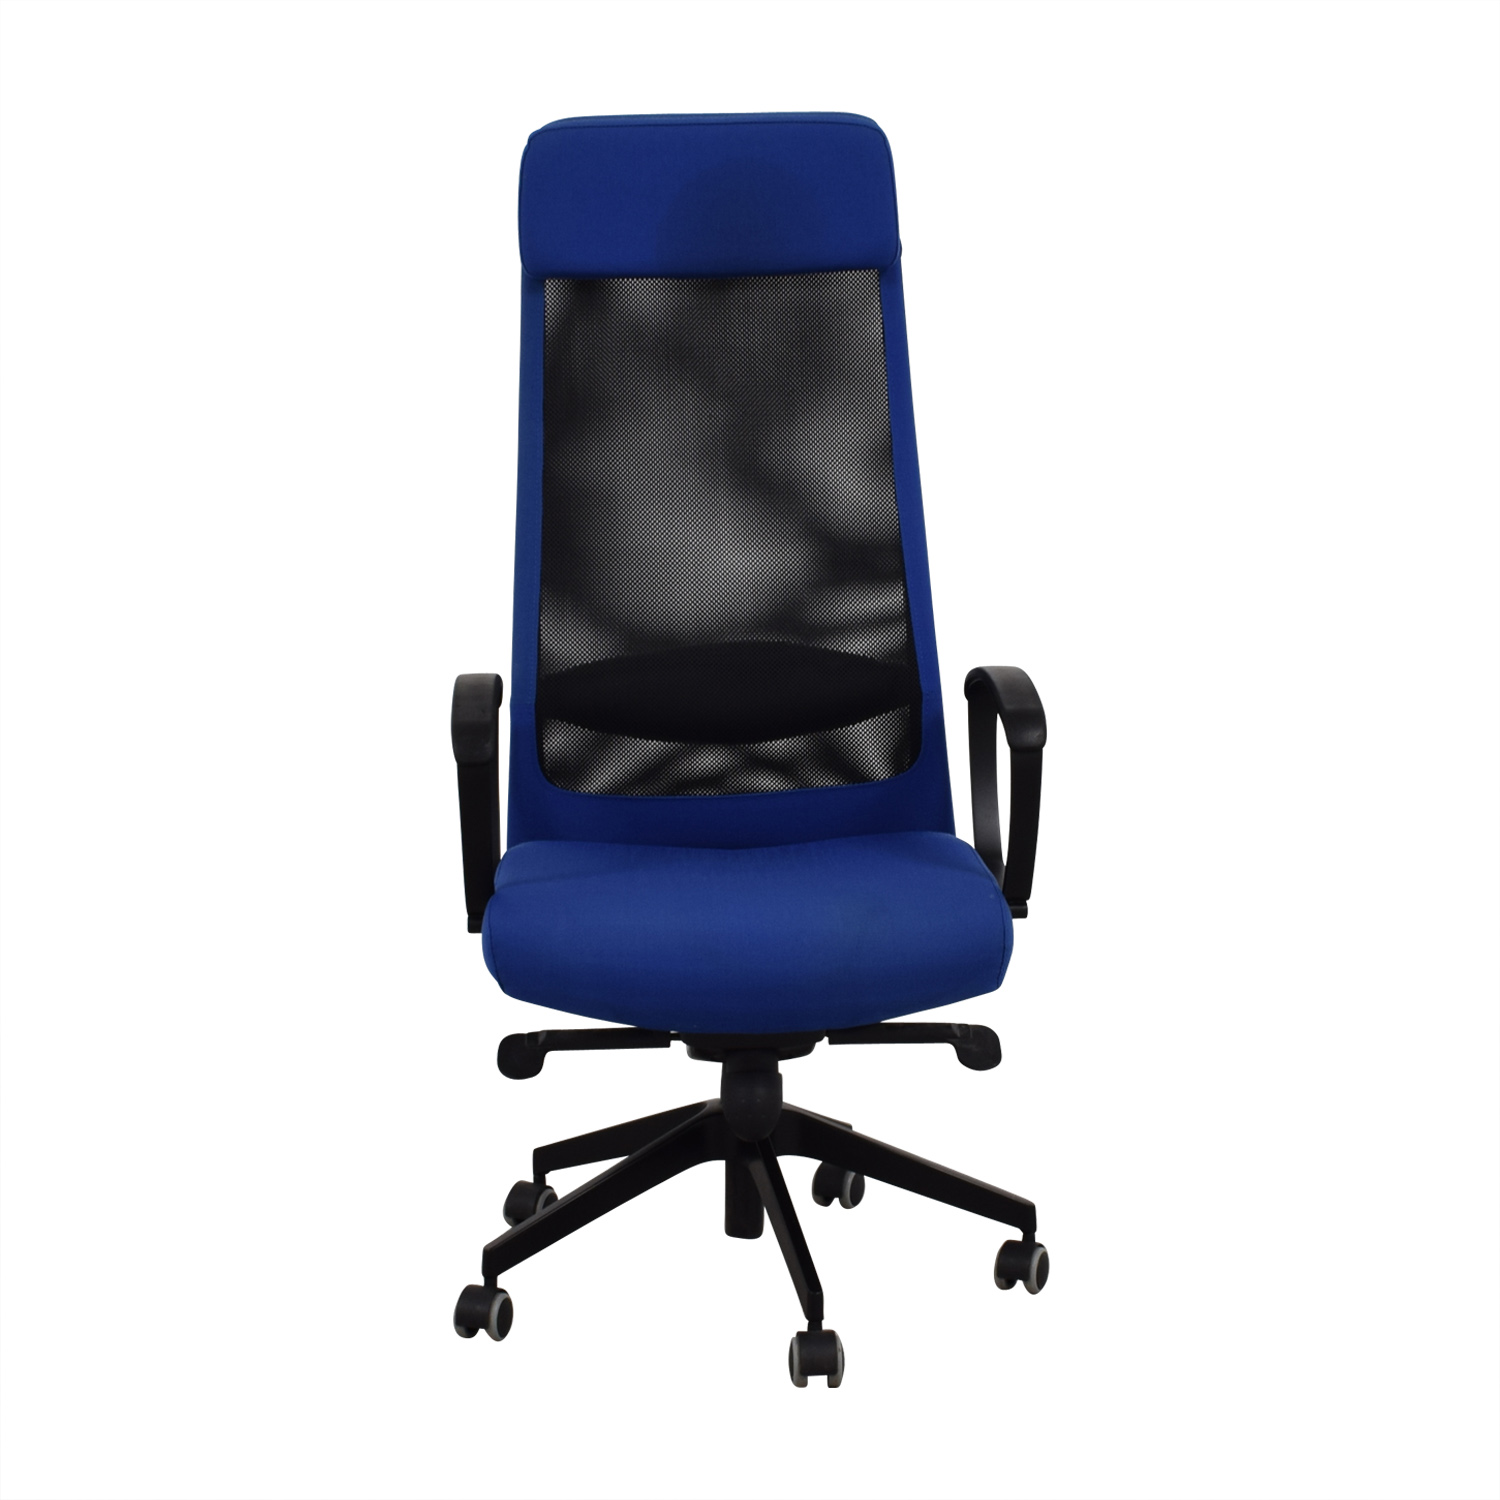 Blue Office Chair Blue Office Chair Ikea Ikea TorbjÖrn Swivel Chair